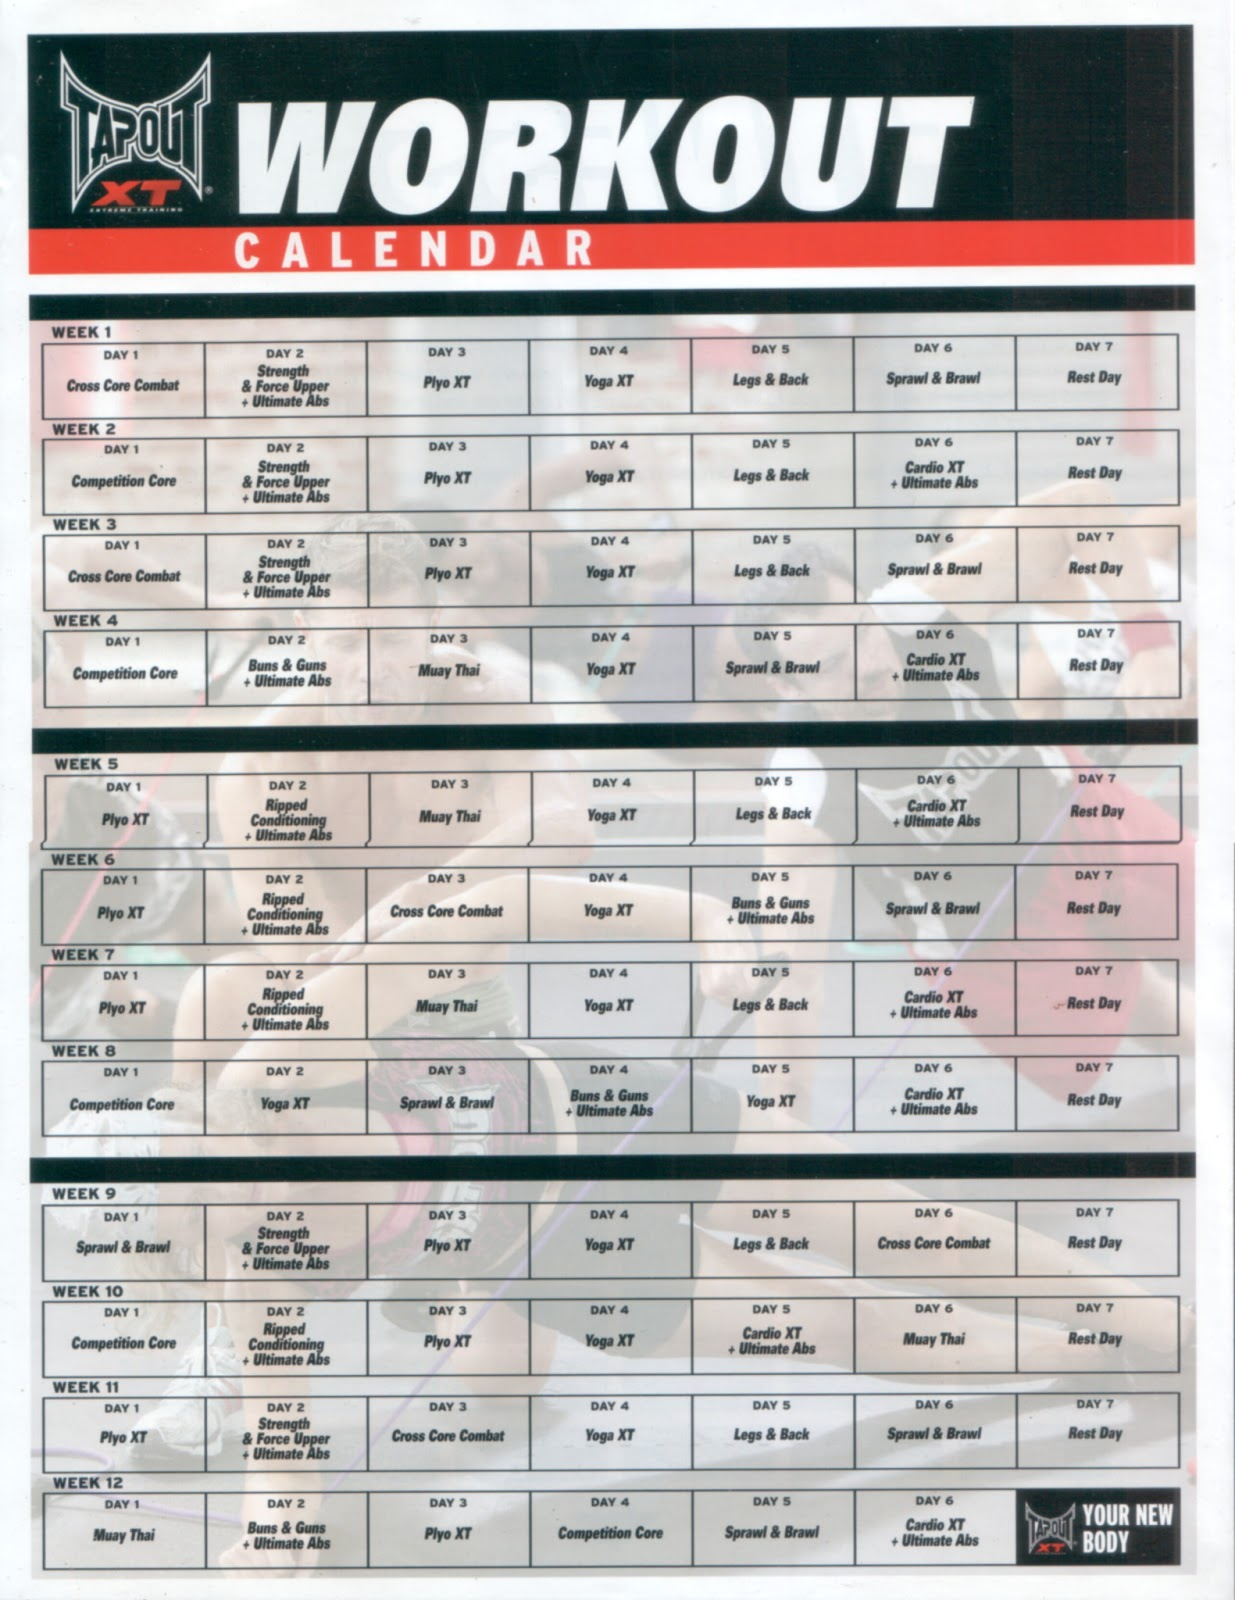 fitness body beast tapout xt 231 x 300 jpeg 20kb tapout xt workout all ...